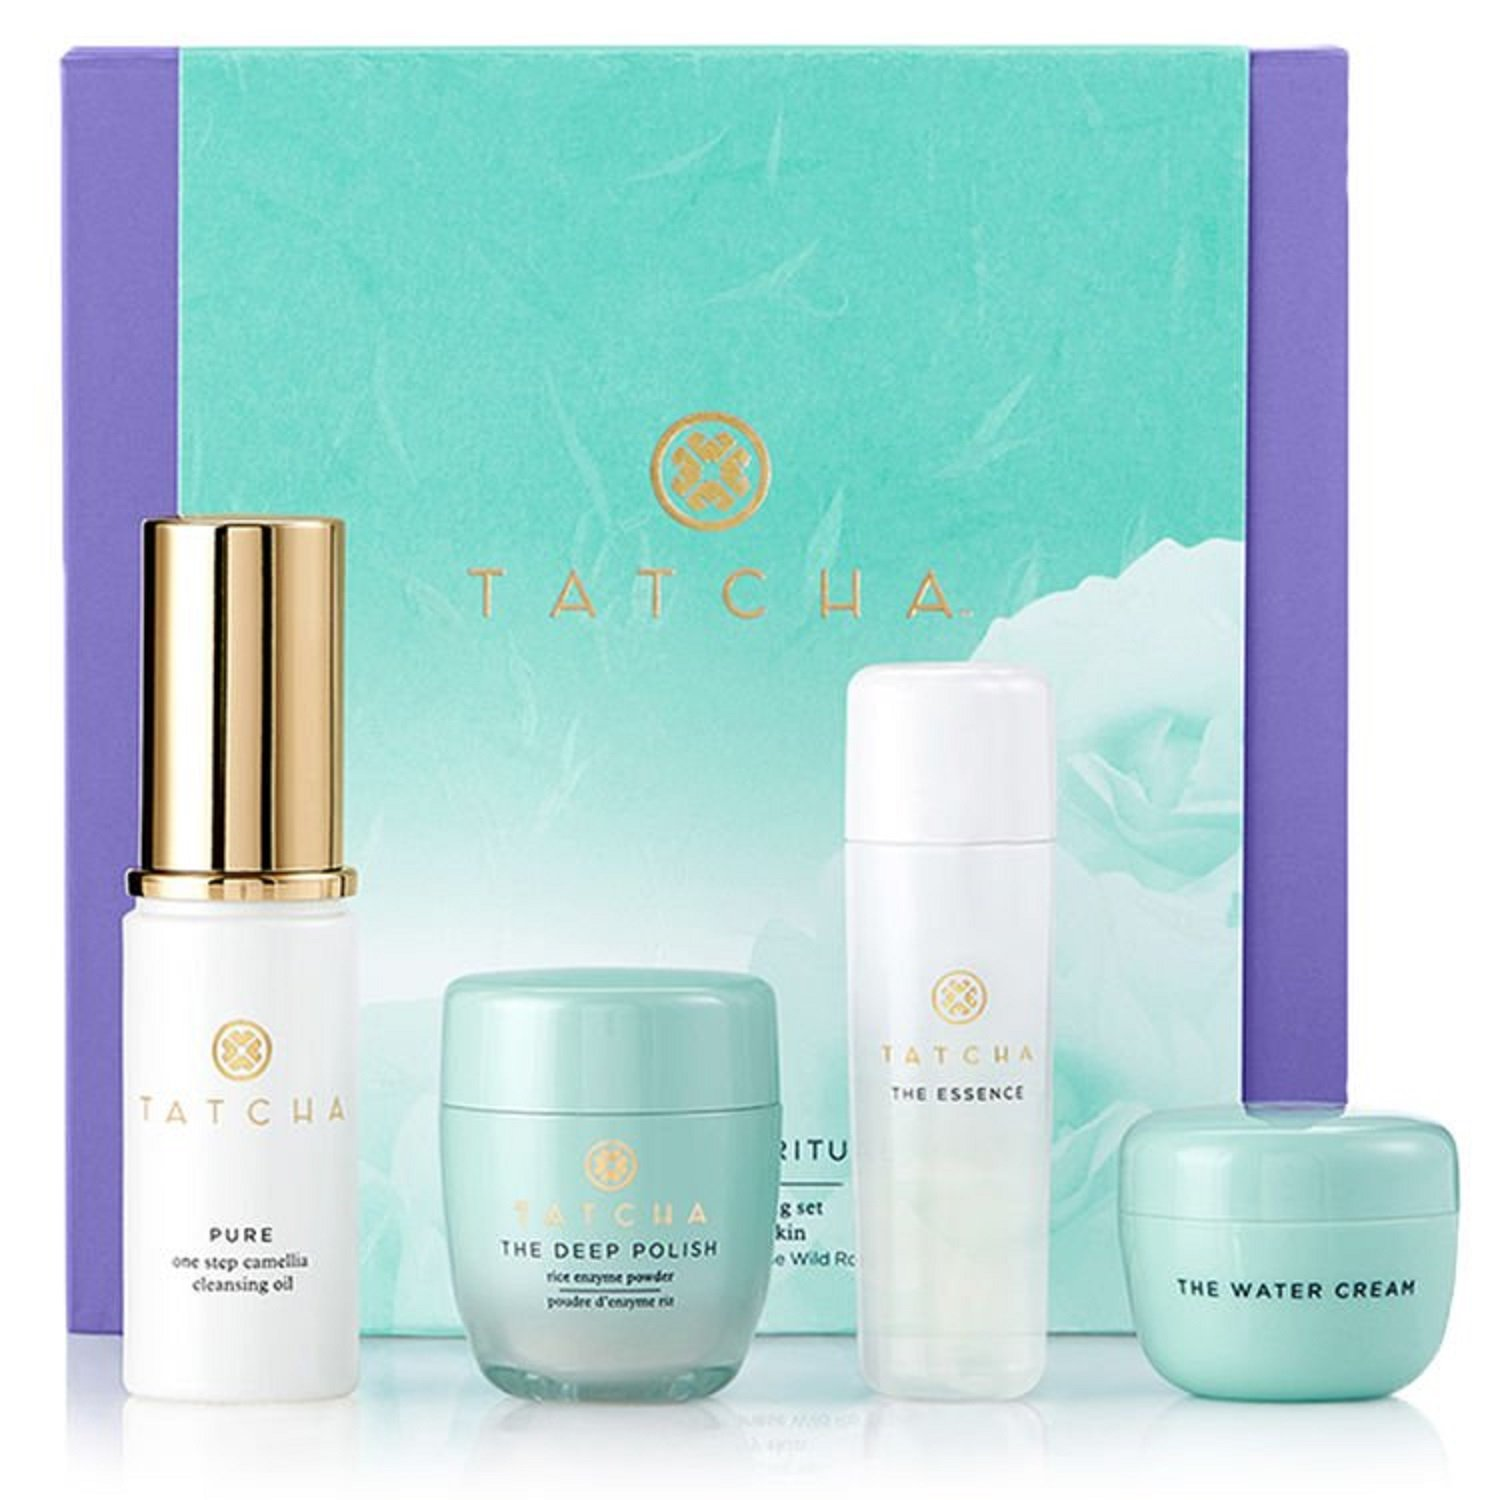 Tatcha The Starter Ritual Set - Balancing for Normal to Oily Skin